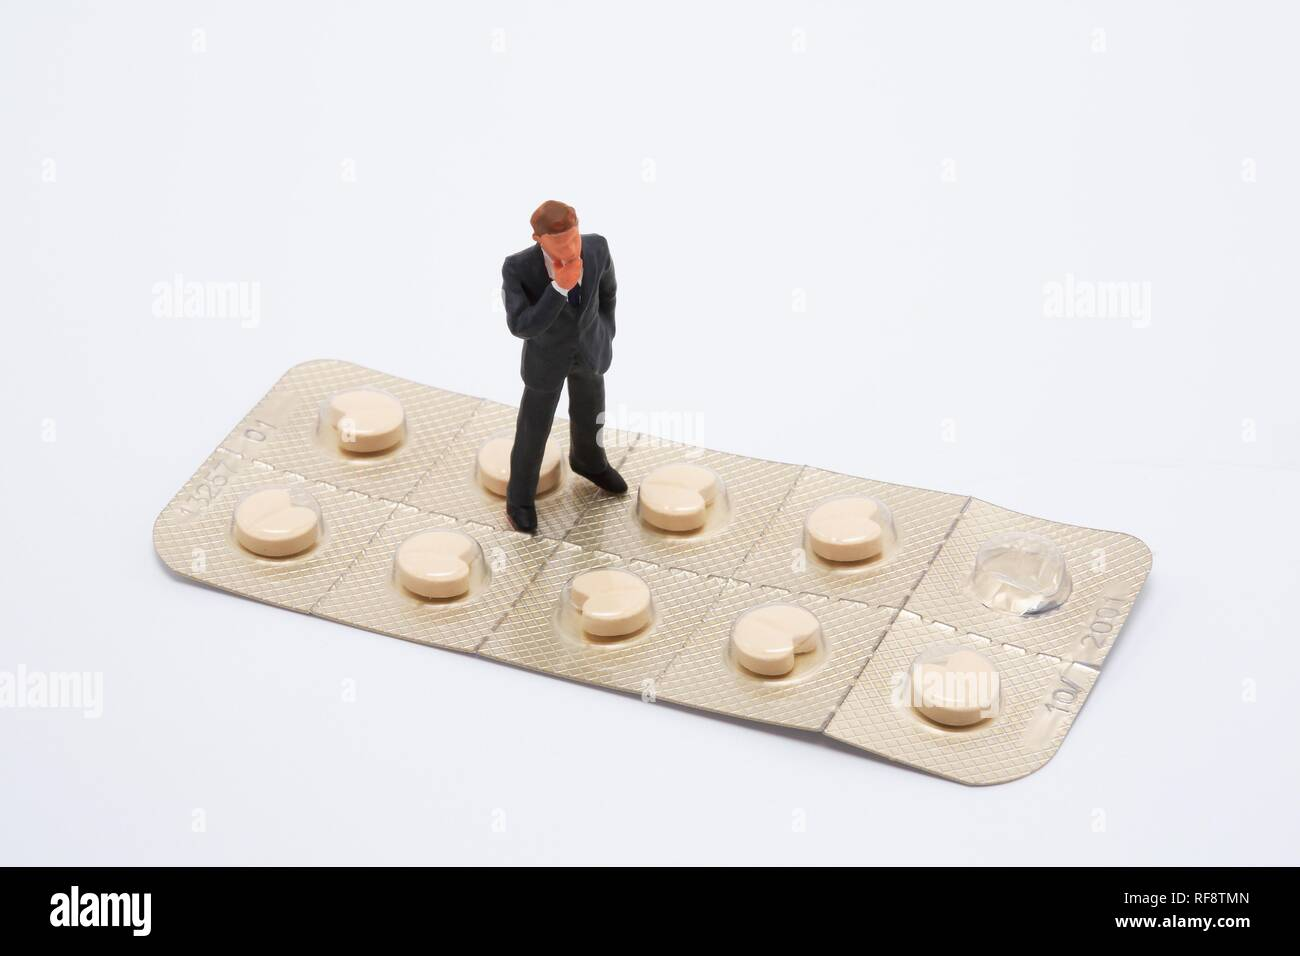 Small man standing on a large pill packet (beta blockers): symbol for skepticism of the pharmaceutical industry Stock Photo